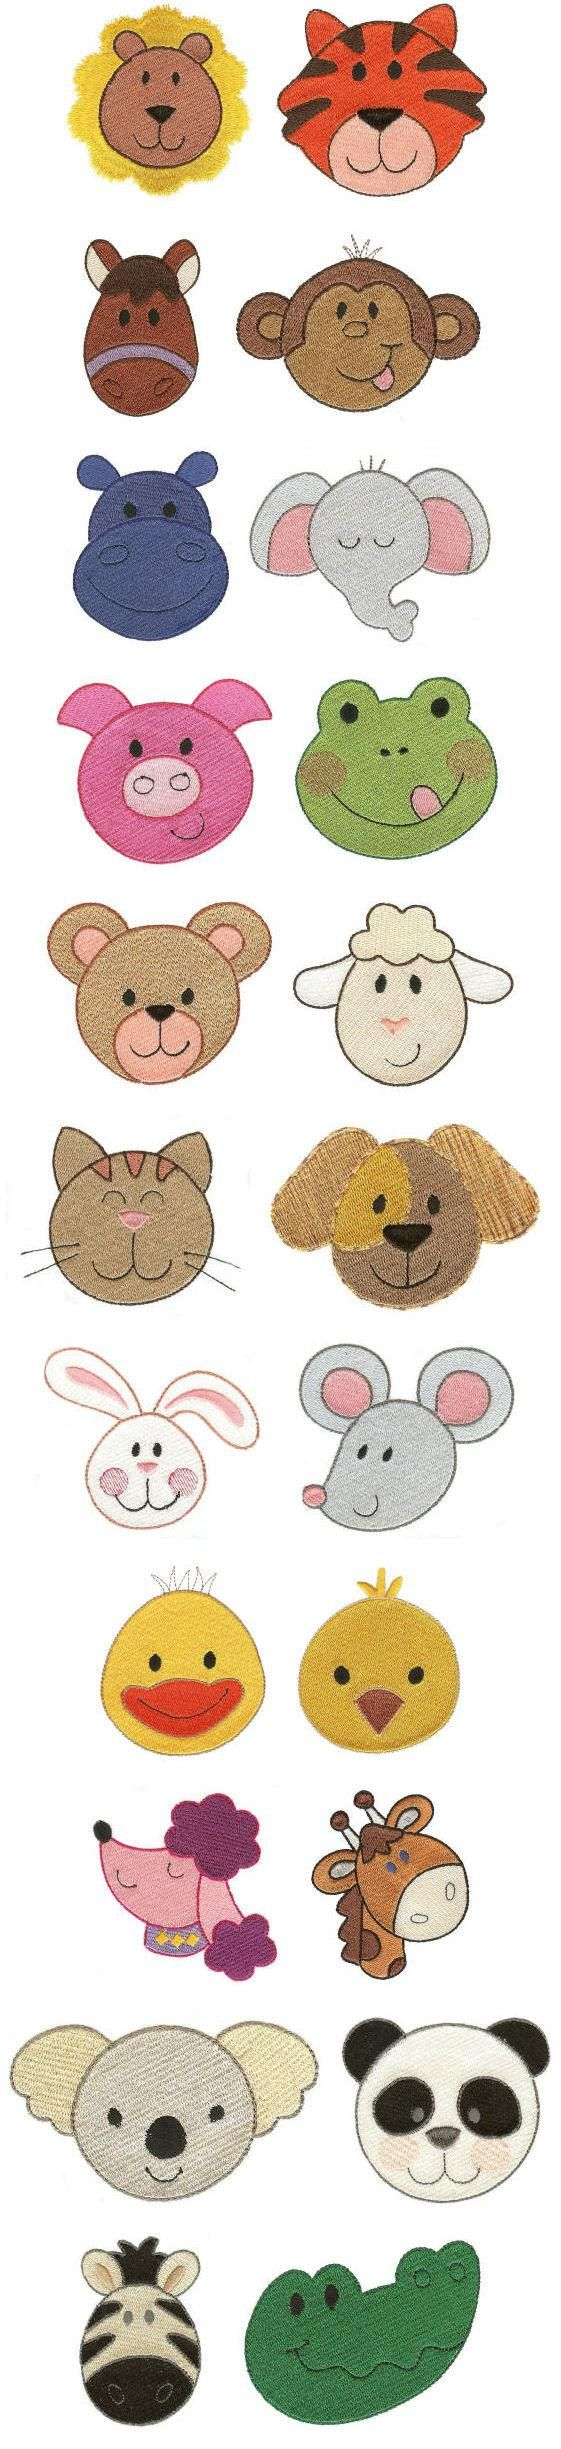 """Cute Animal Faces Filled"" this huge set of 22 designs comes with simple and delightful animal faces suitable for kids clothes, gear, quilts and sew much more! Come see them all today!"